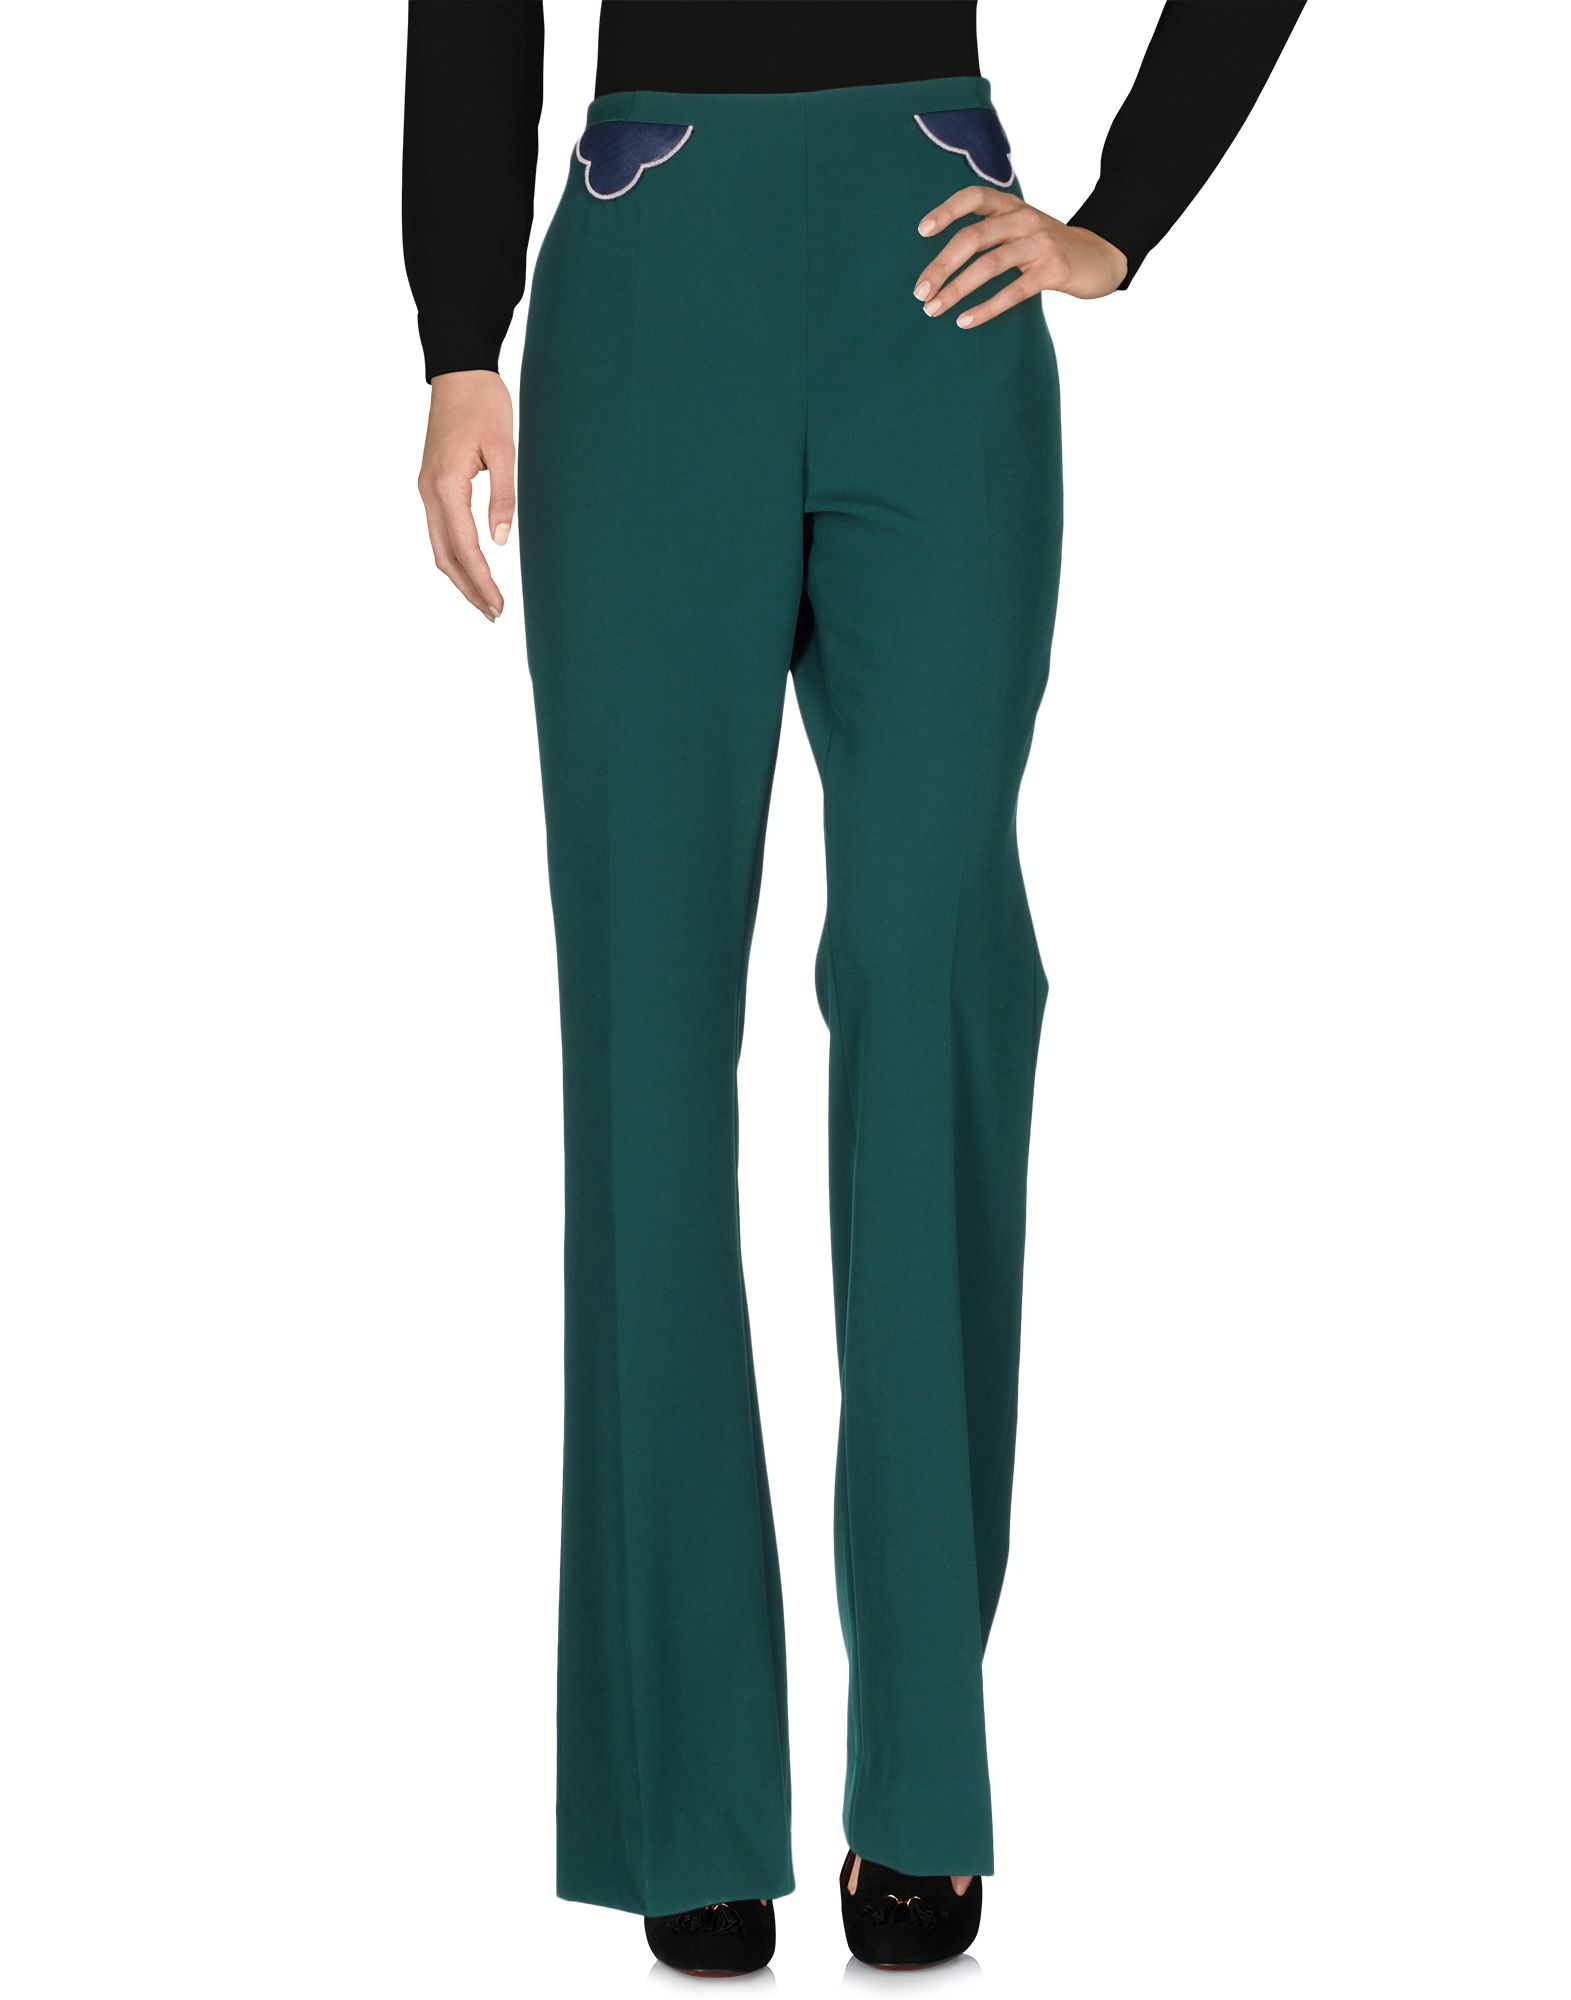 PARDEN'S Casual Pants in Green